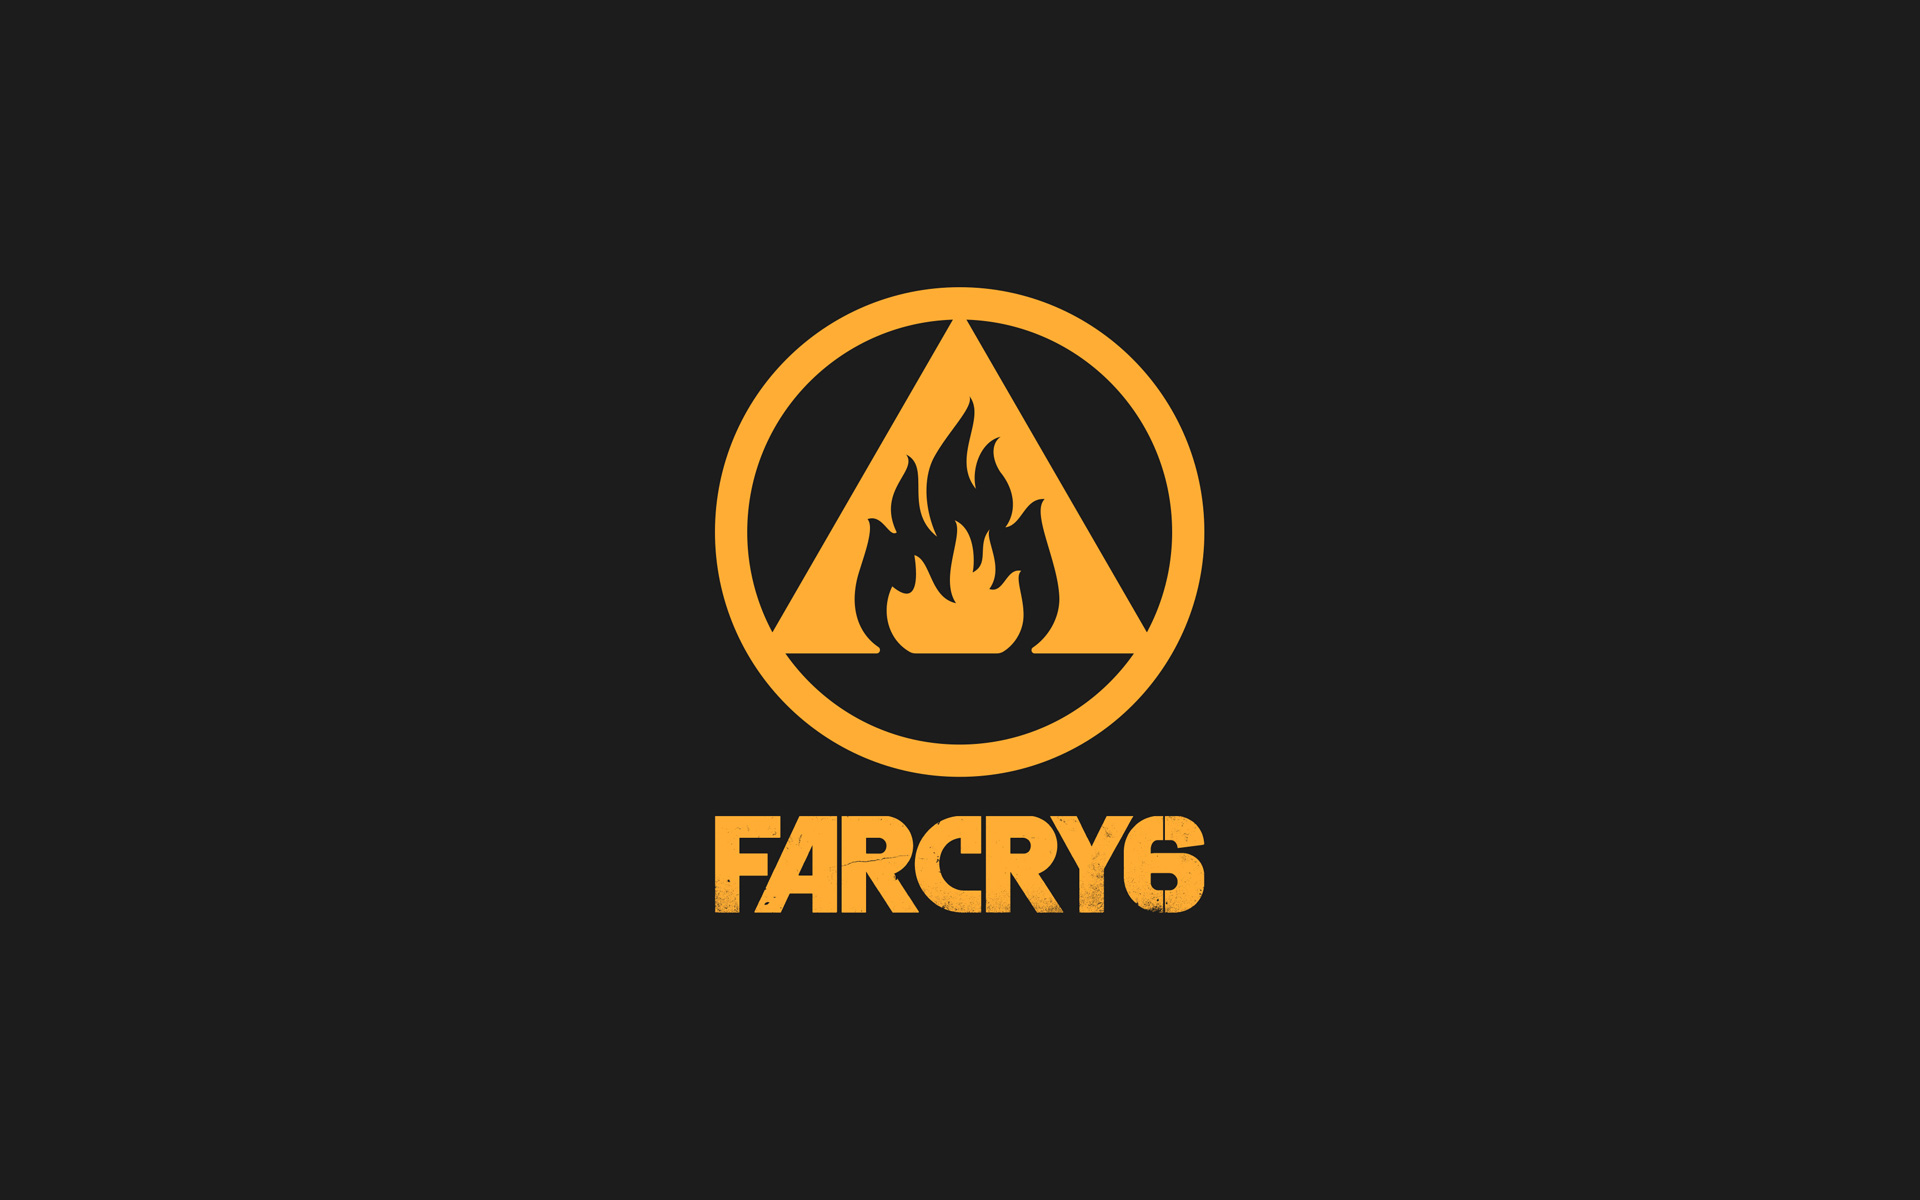 Far Cry 6 Wallpaper in 1920x1200